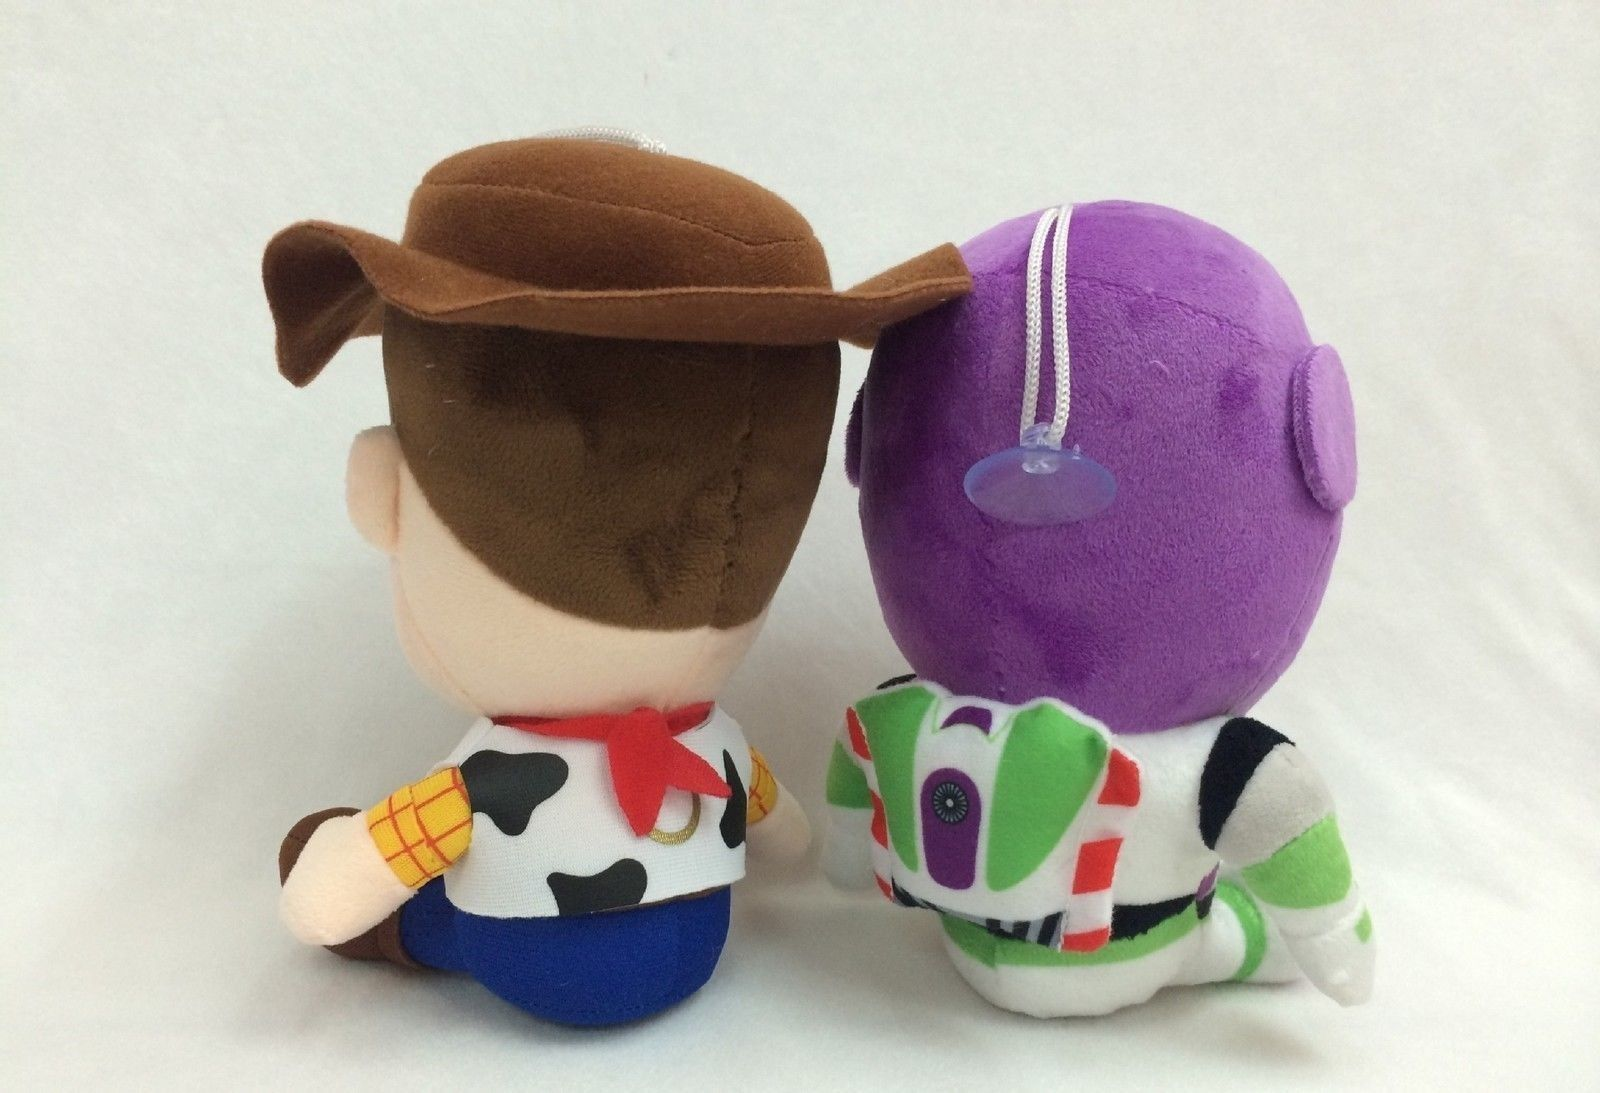 The Toy Story Woody Buzz Lightyear Plush Soft Doll 7''/18cm Tall set of 2